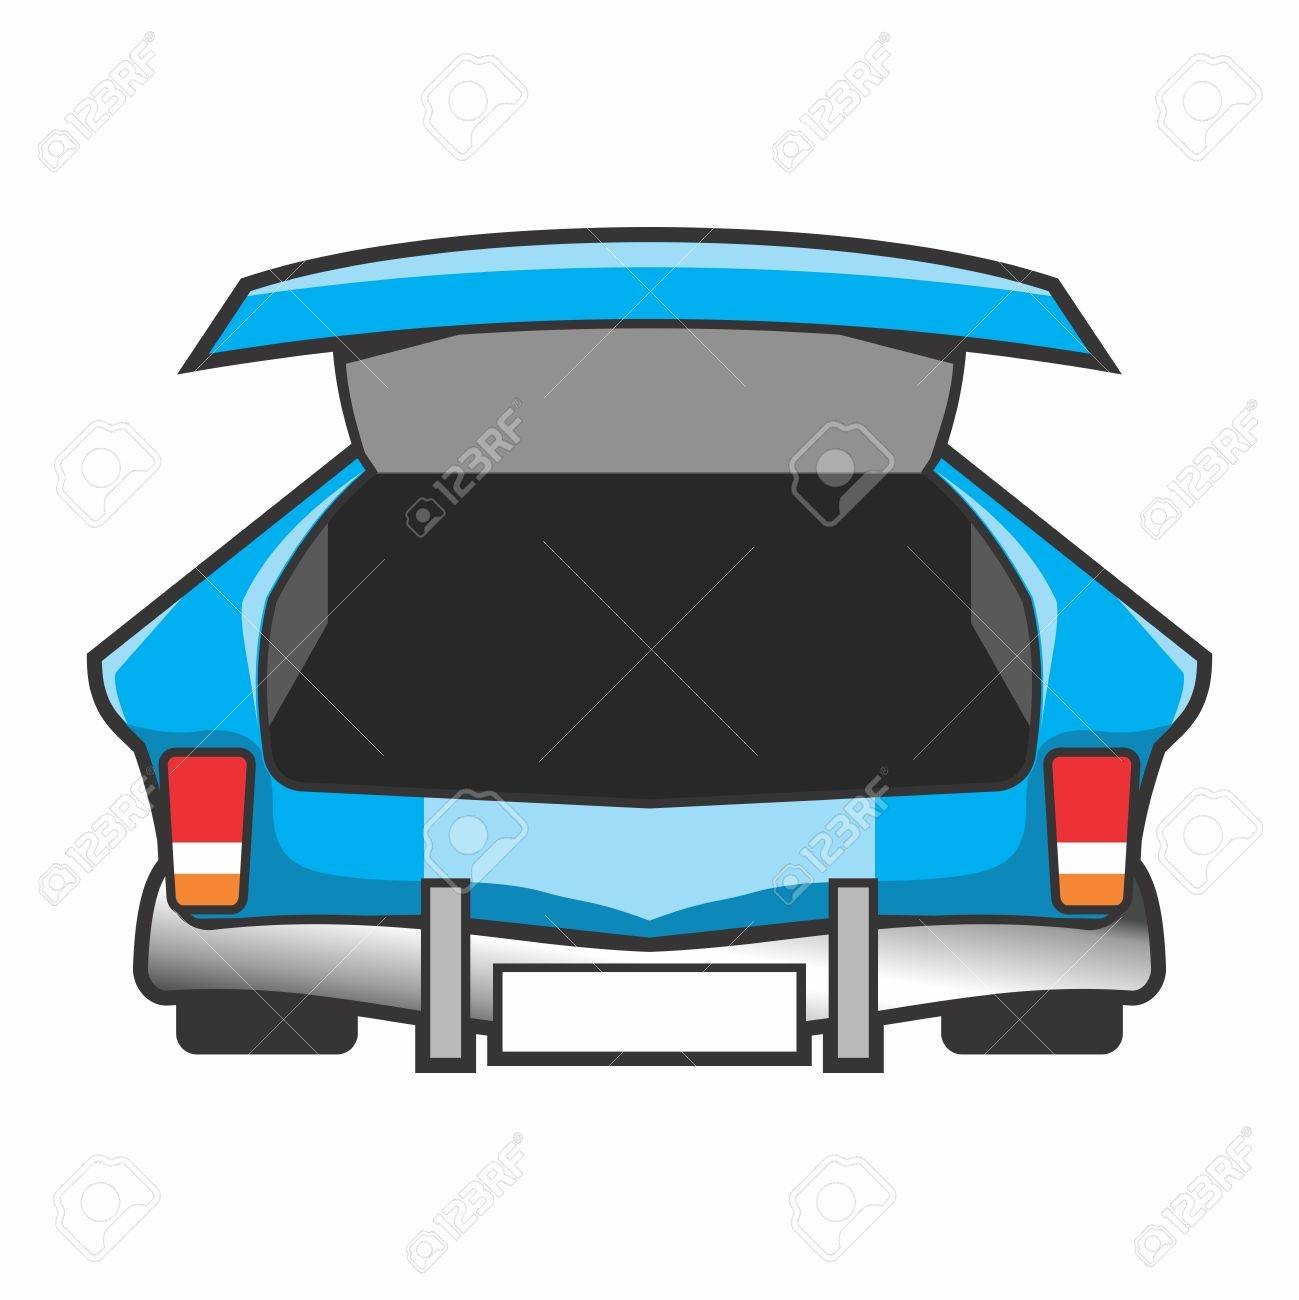 Empty Open Trunk of a Car Stock Vector - 84814823